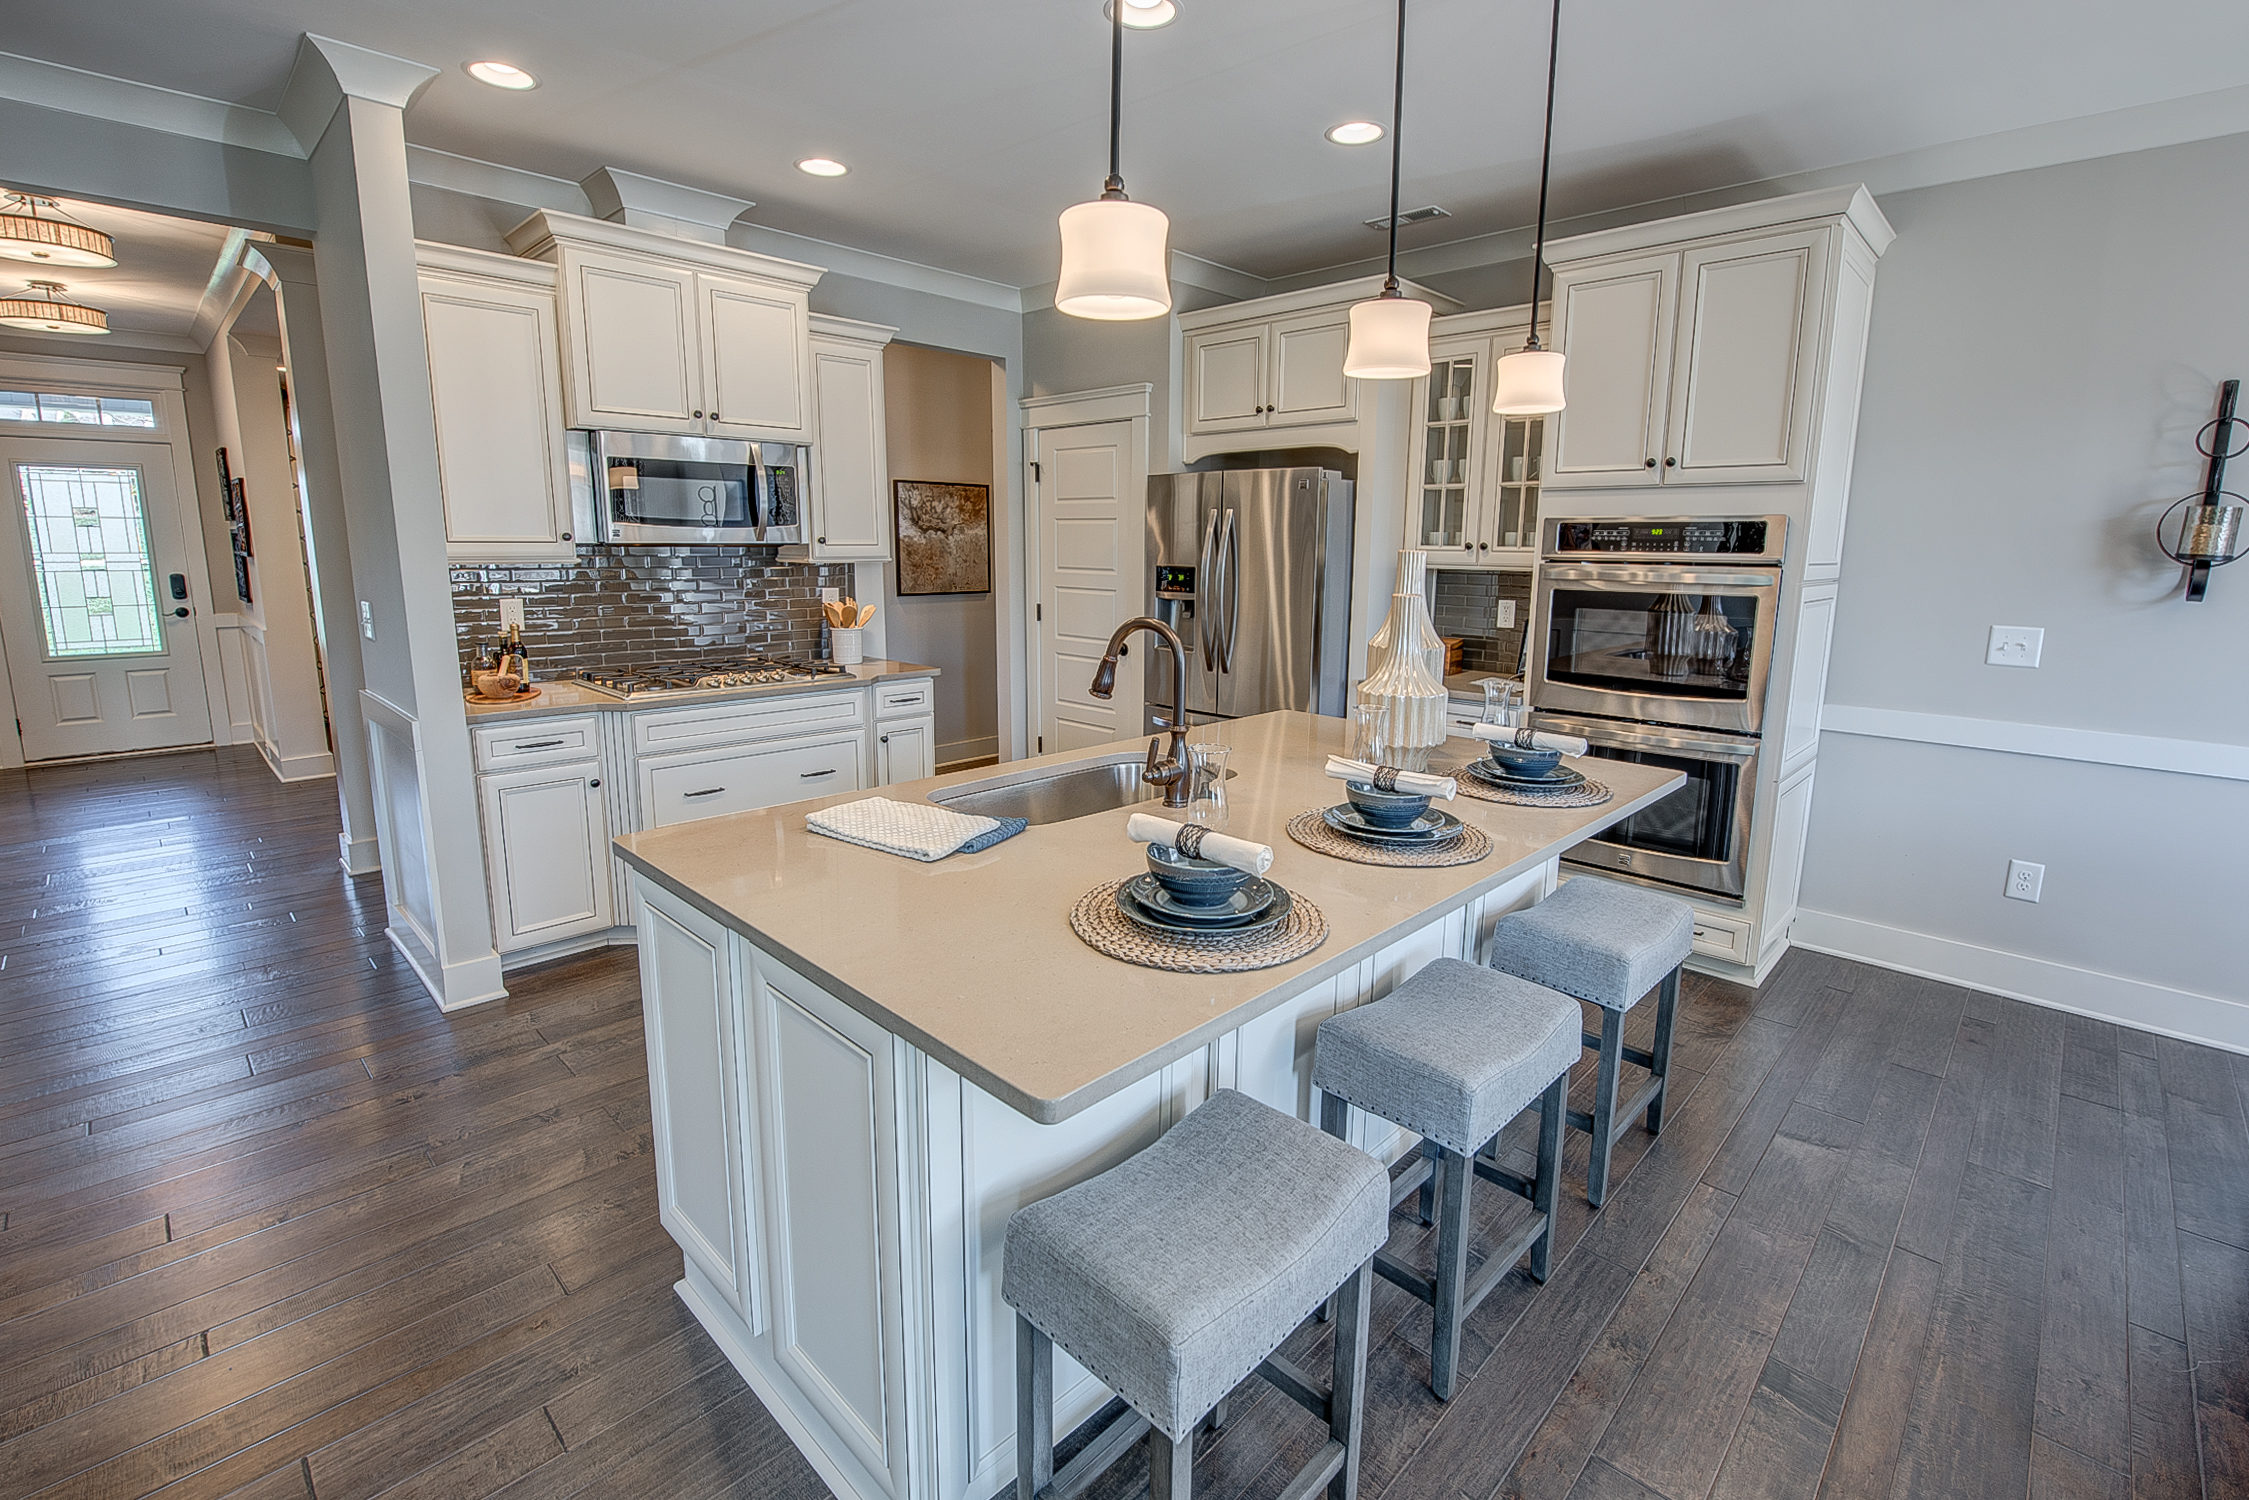 104-bushney-loop-mooresville-print-023-29-kitchen-2249x1500-300dpi_33628712001_o.jpg